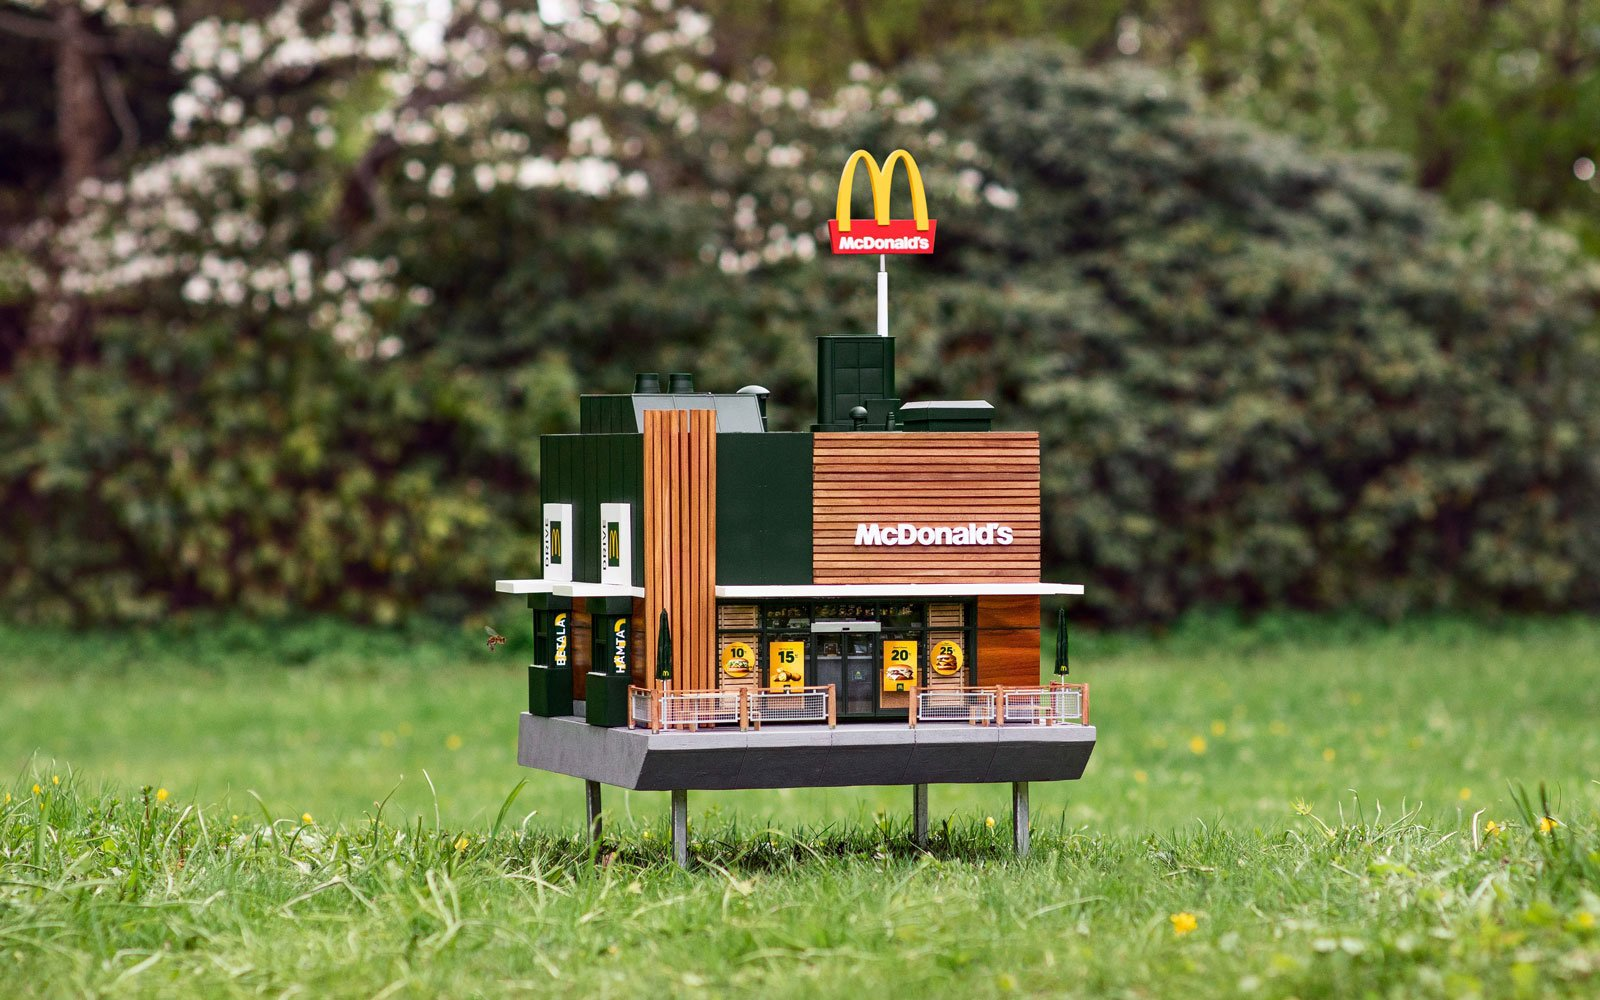 The mini McDonald's is painstakingly crafted down to the smallest detail.